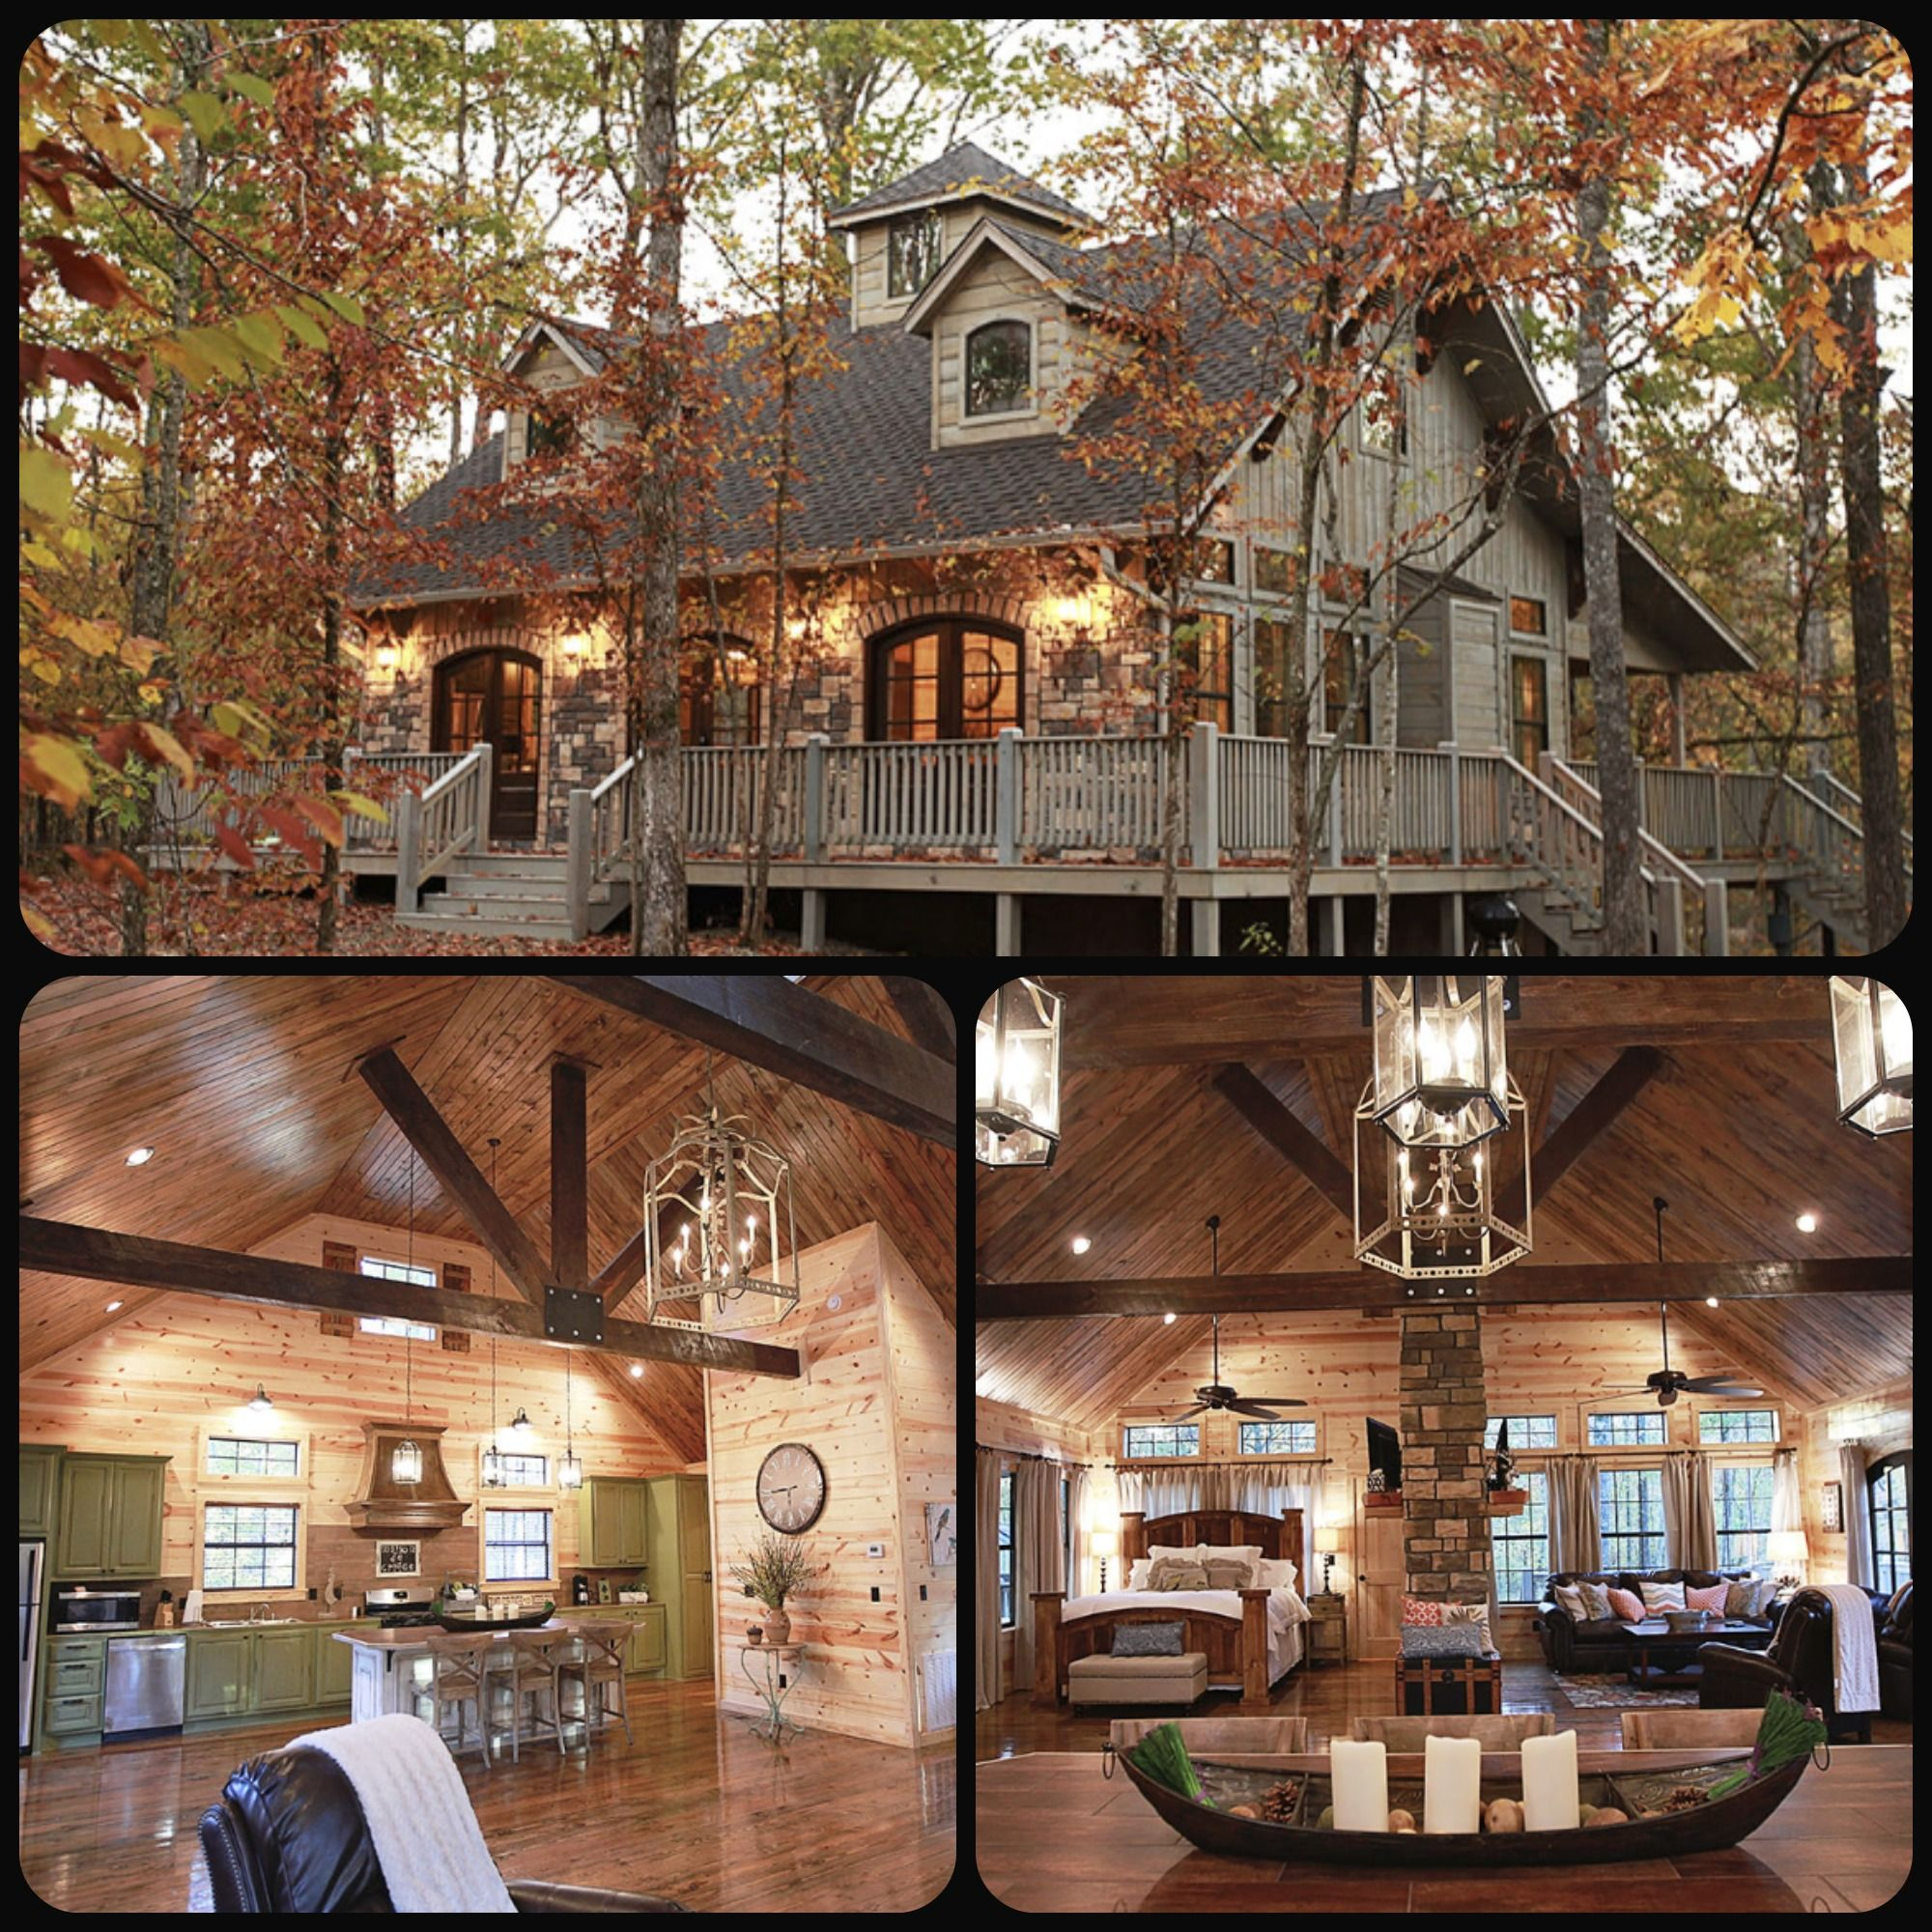 Beavers Bend In Broken Arrow, Oklahoma, Cabin Getaway!